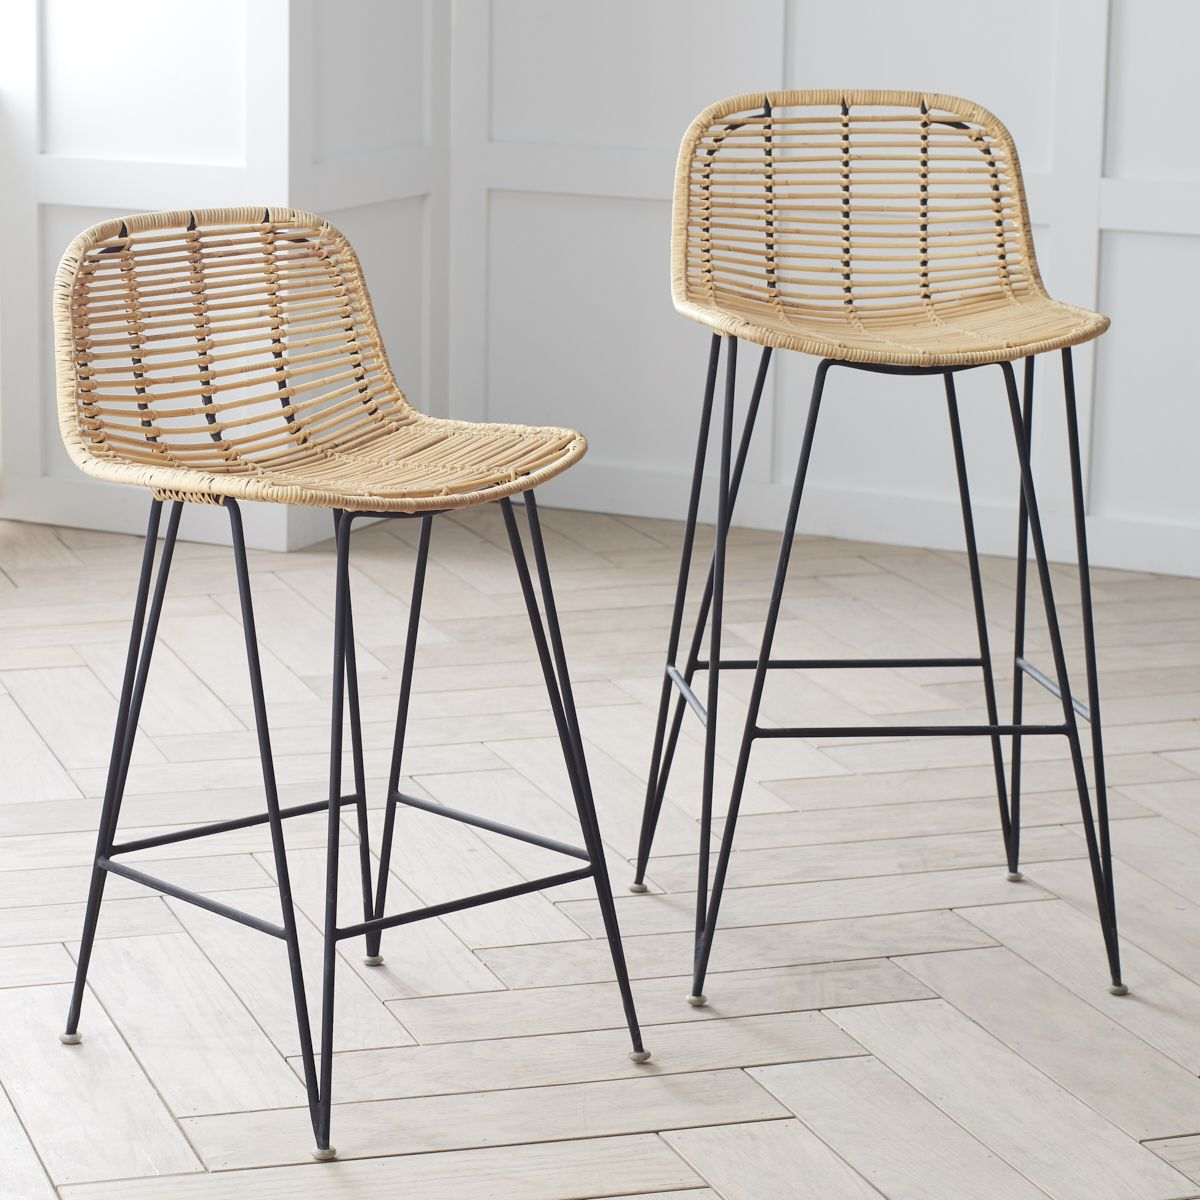 Scoop Stool Products in 2019 Kitchen stools, Kitchen